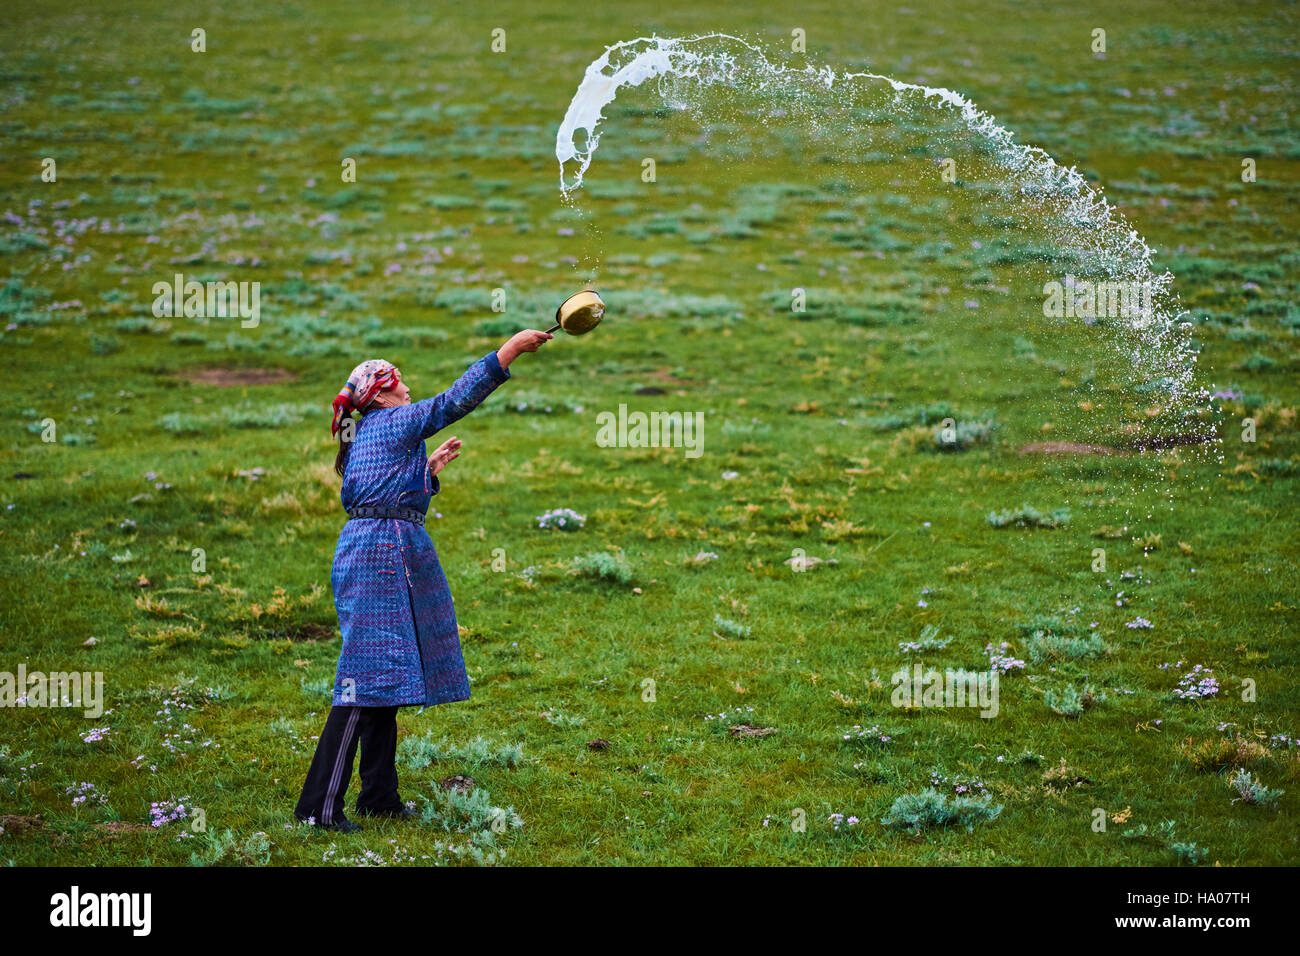 Mongolia, Arkhangai province, nomad woman making an offering to Tengri, the spirit of the sky - Stock Image